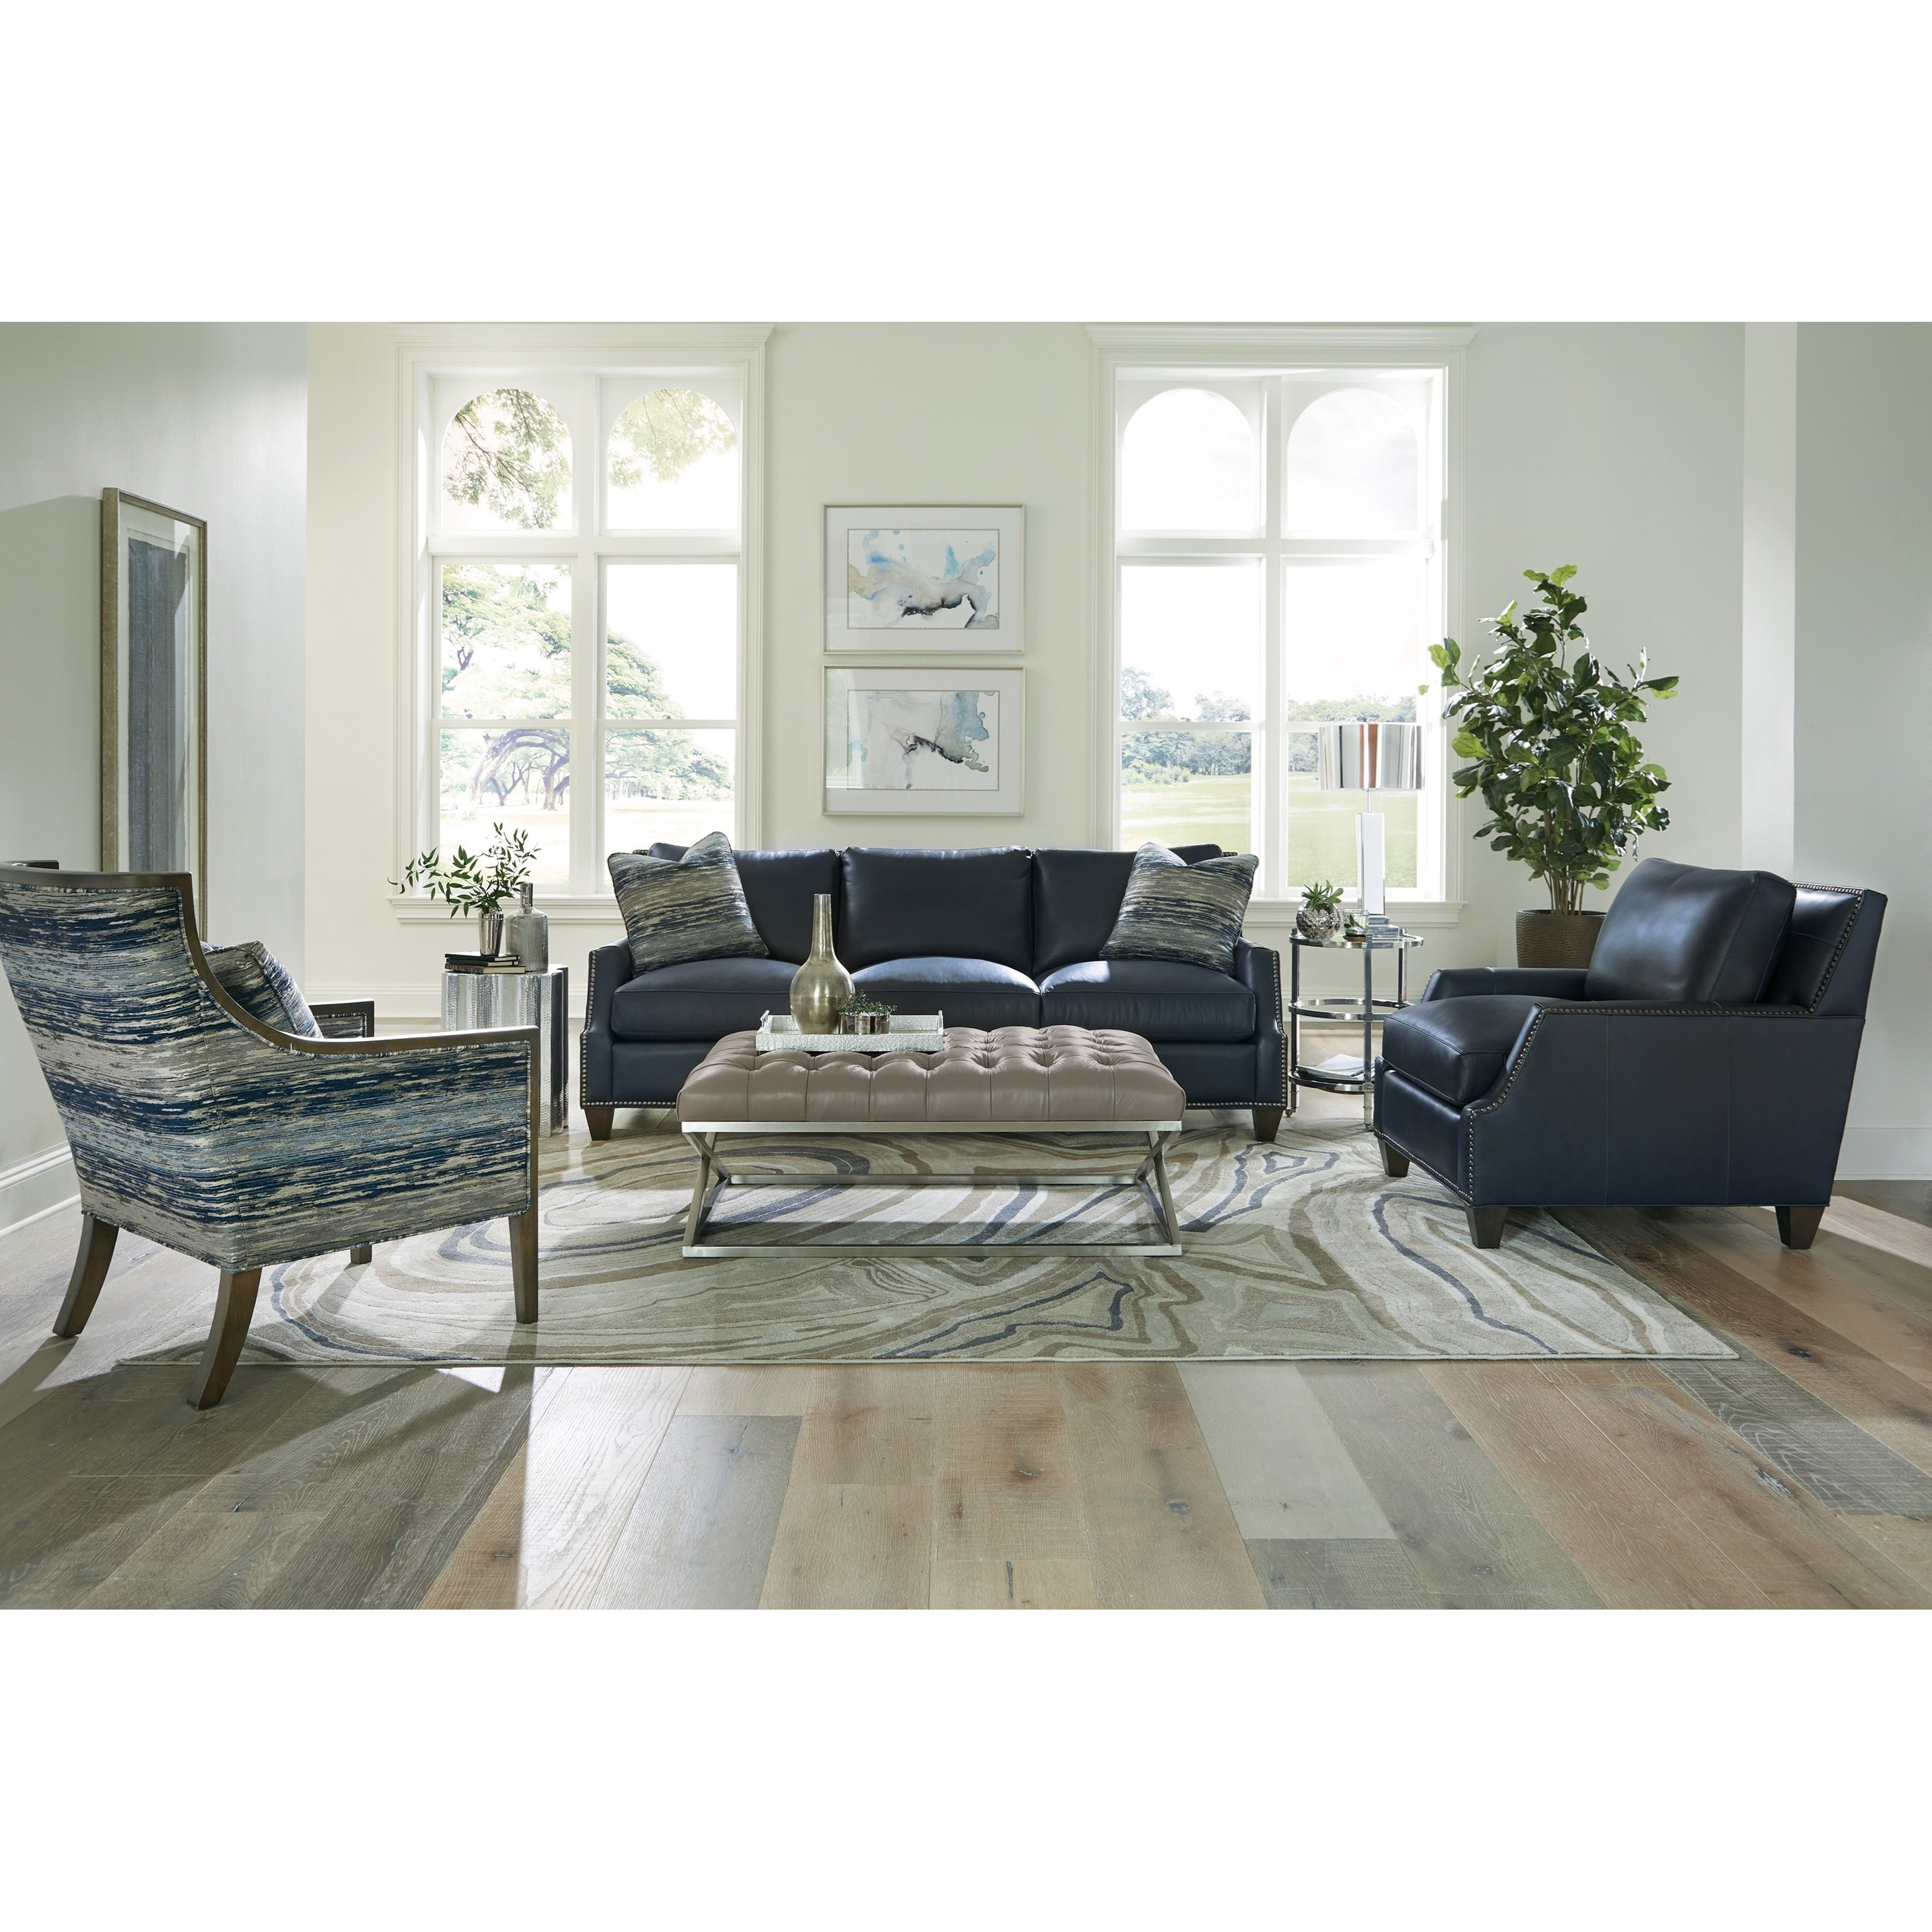 L790350 Living Room Group by Craftmaster at Baer's Furniture